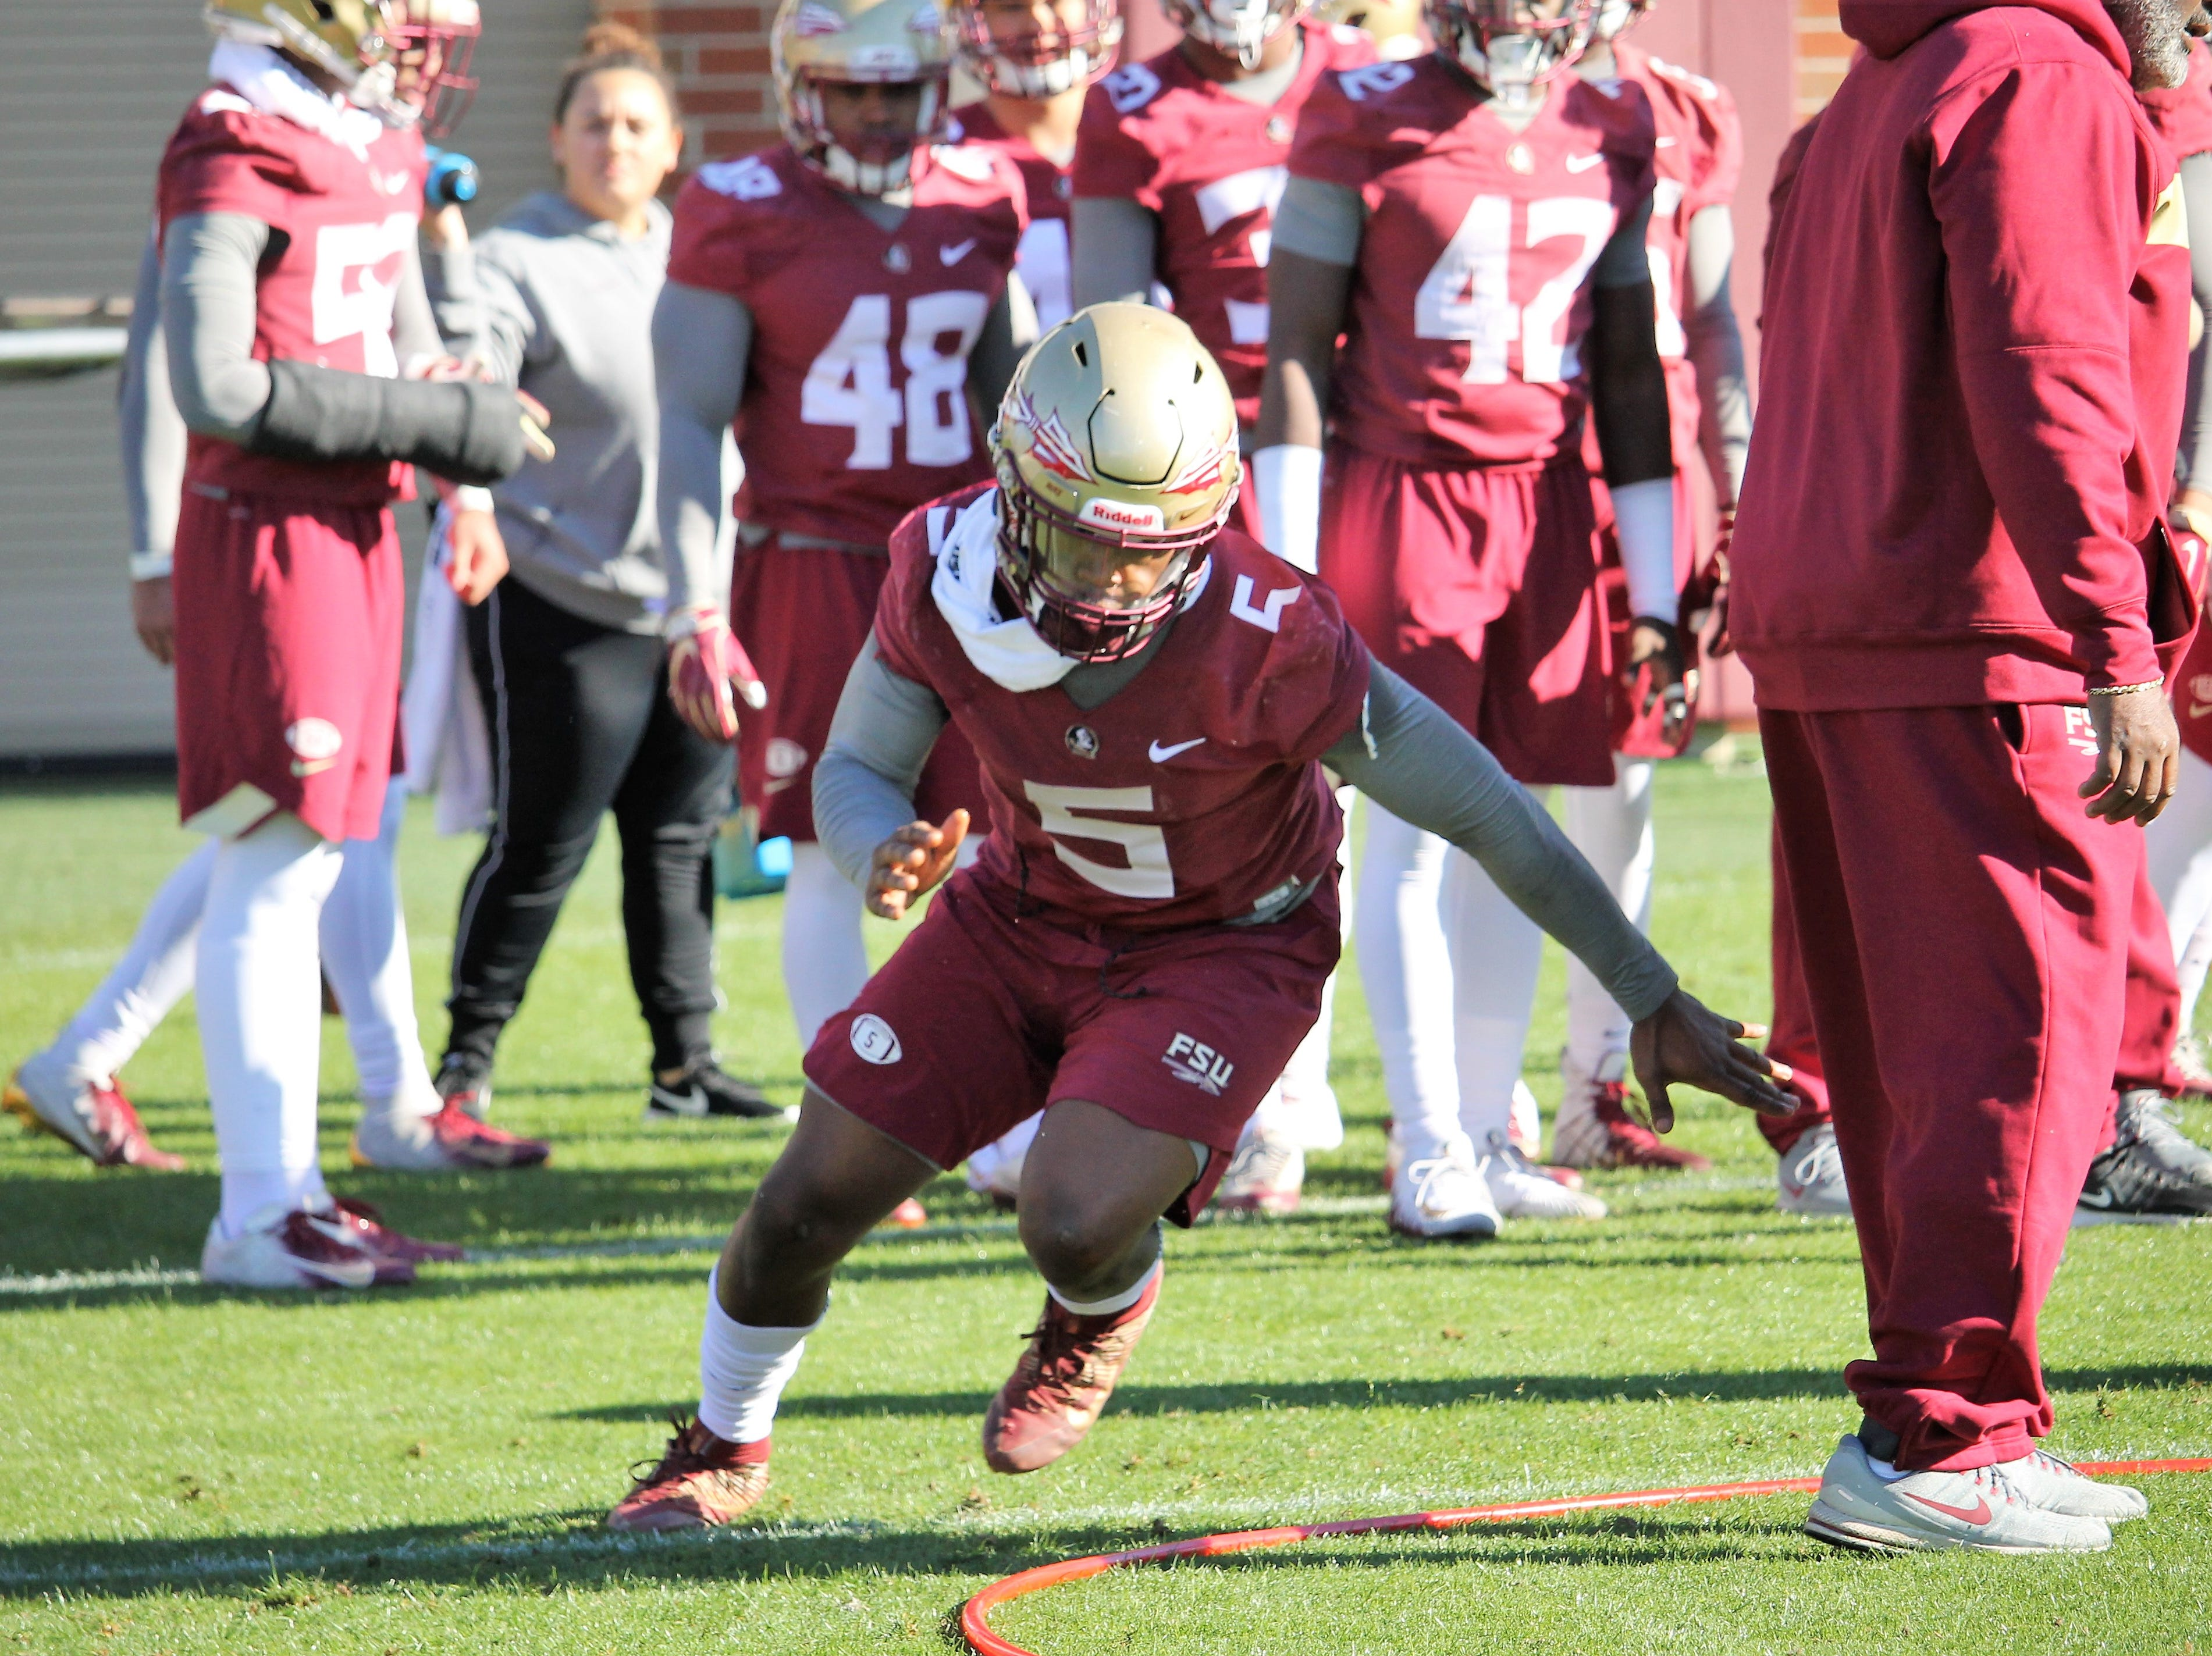 Linebacker Dontavious Jackson at FSU football practice on March 6.